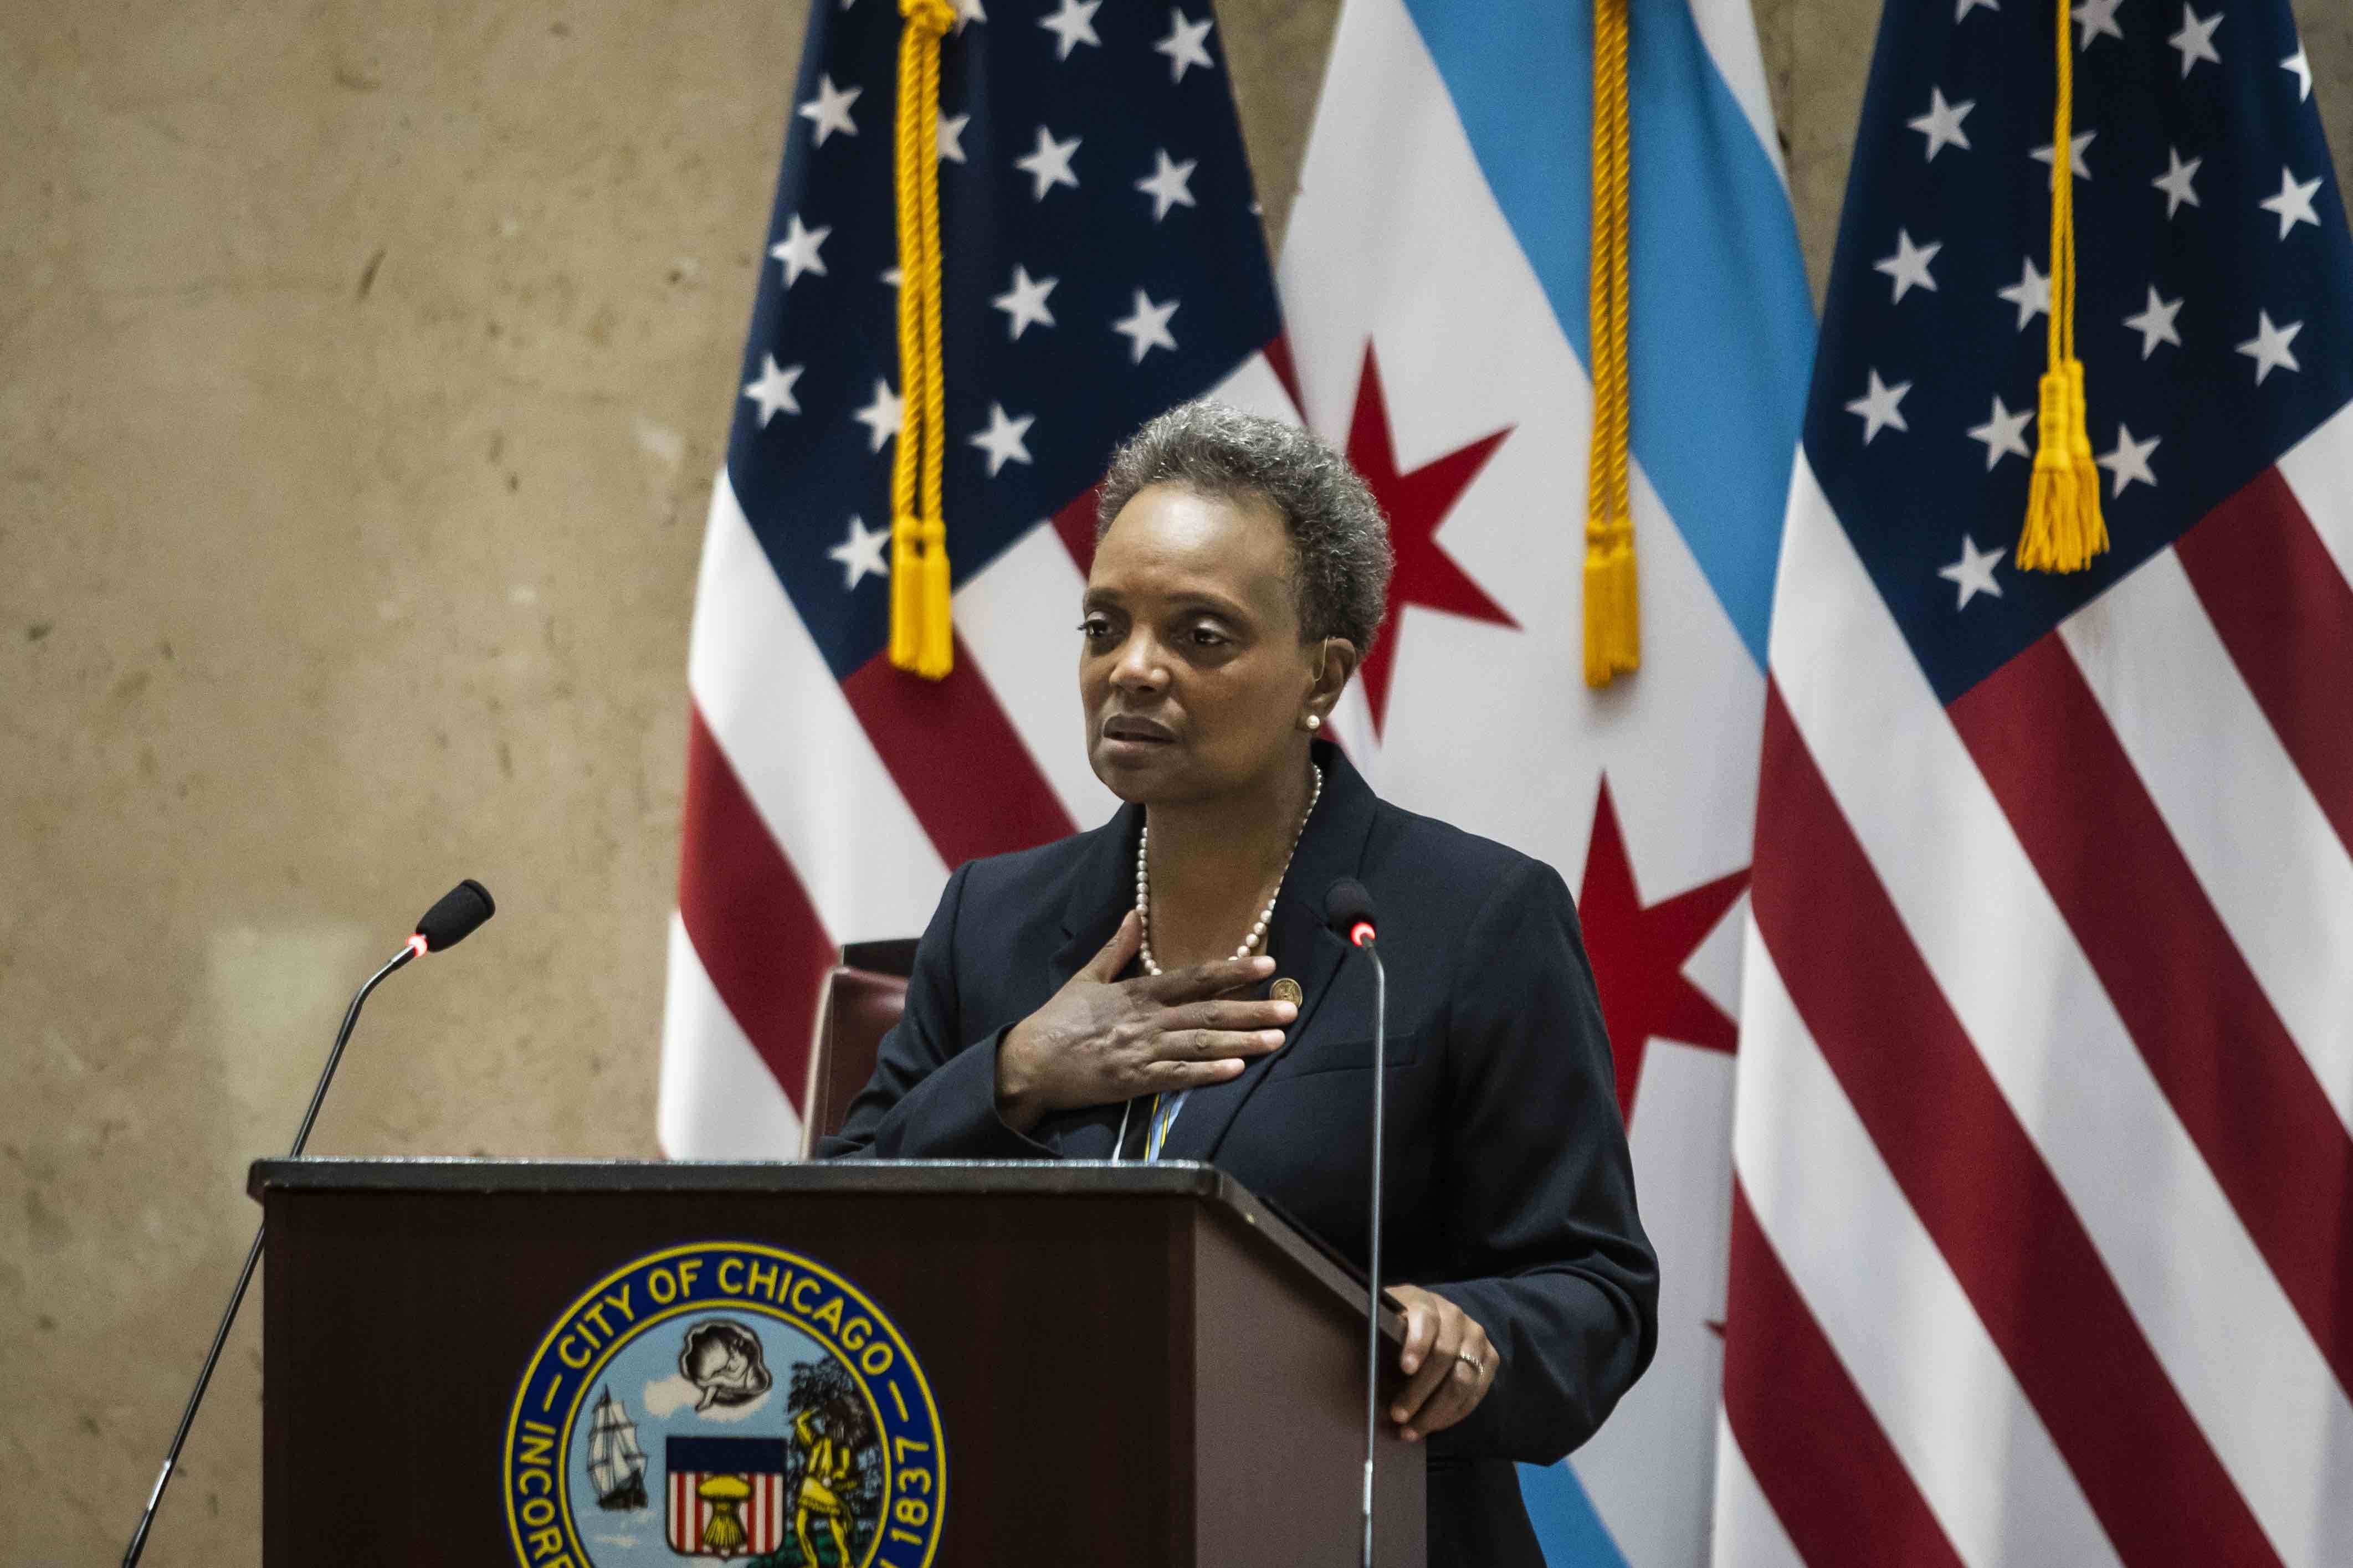 Mayor Lori Lightfoot addresses Chicago's gun violence while delivering the 2021 budget address during a virtual Chicago City Council meeting at City Hall, Wednesday morning, Oct. 21, 2020.